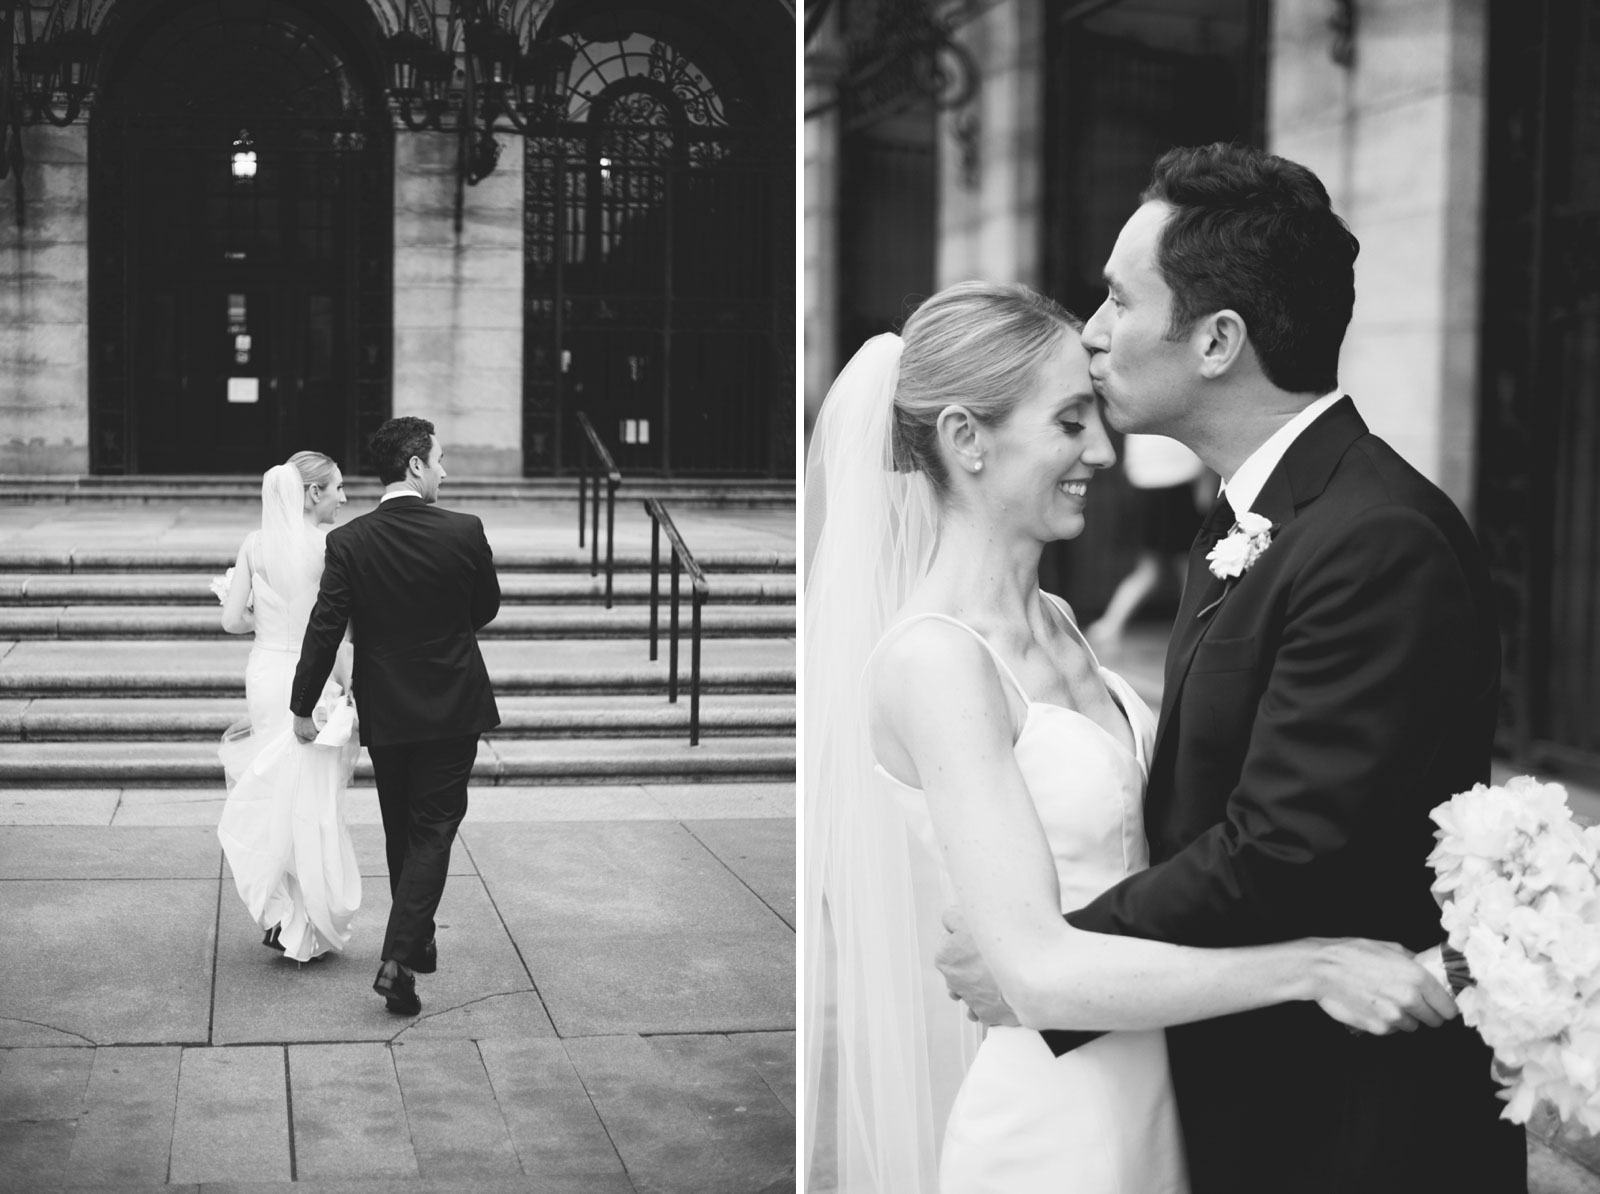 black and white portraits of bride and groom getting cozy together in front of Boston Public Library